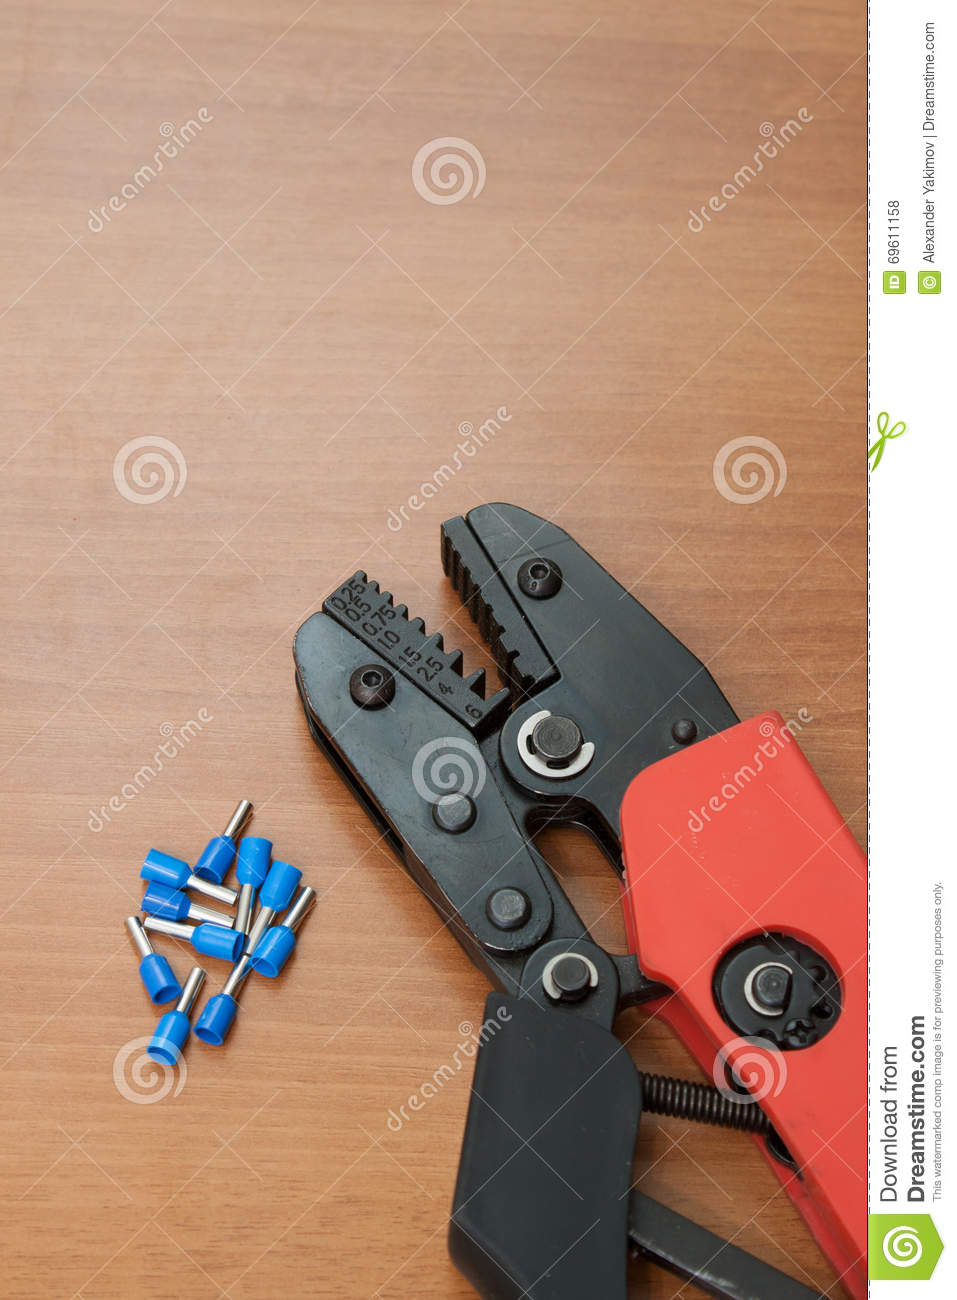 Installation Tool Crimp Terminals For The Cable Stock Photo Wiring Connectors Set Of Press Crimping Pliers Insulated And